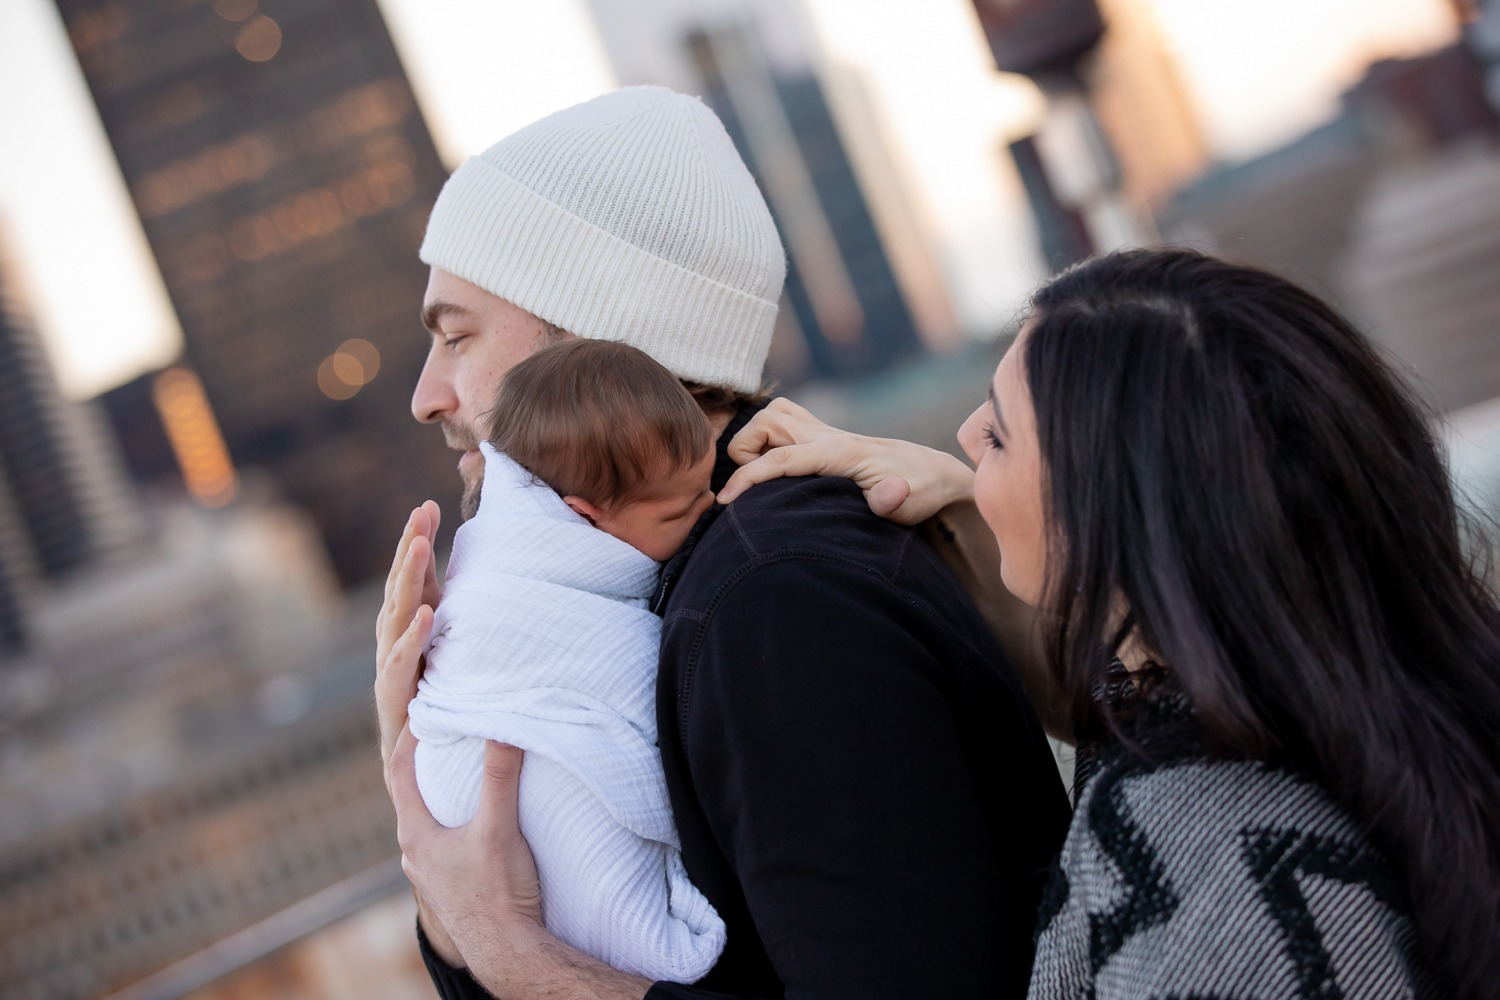 Downtown Boston: Roofdeck Newborn Session in January